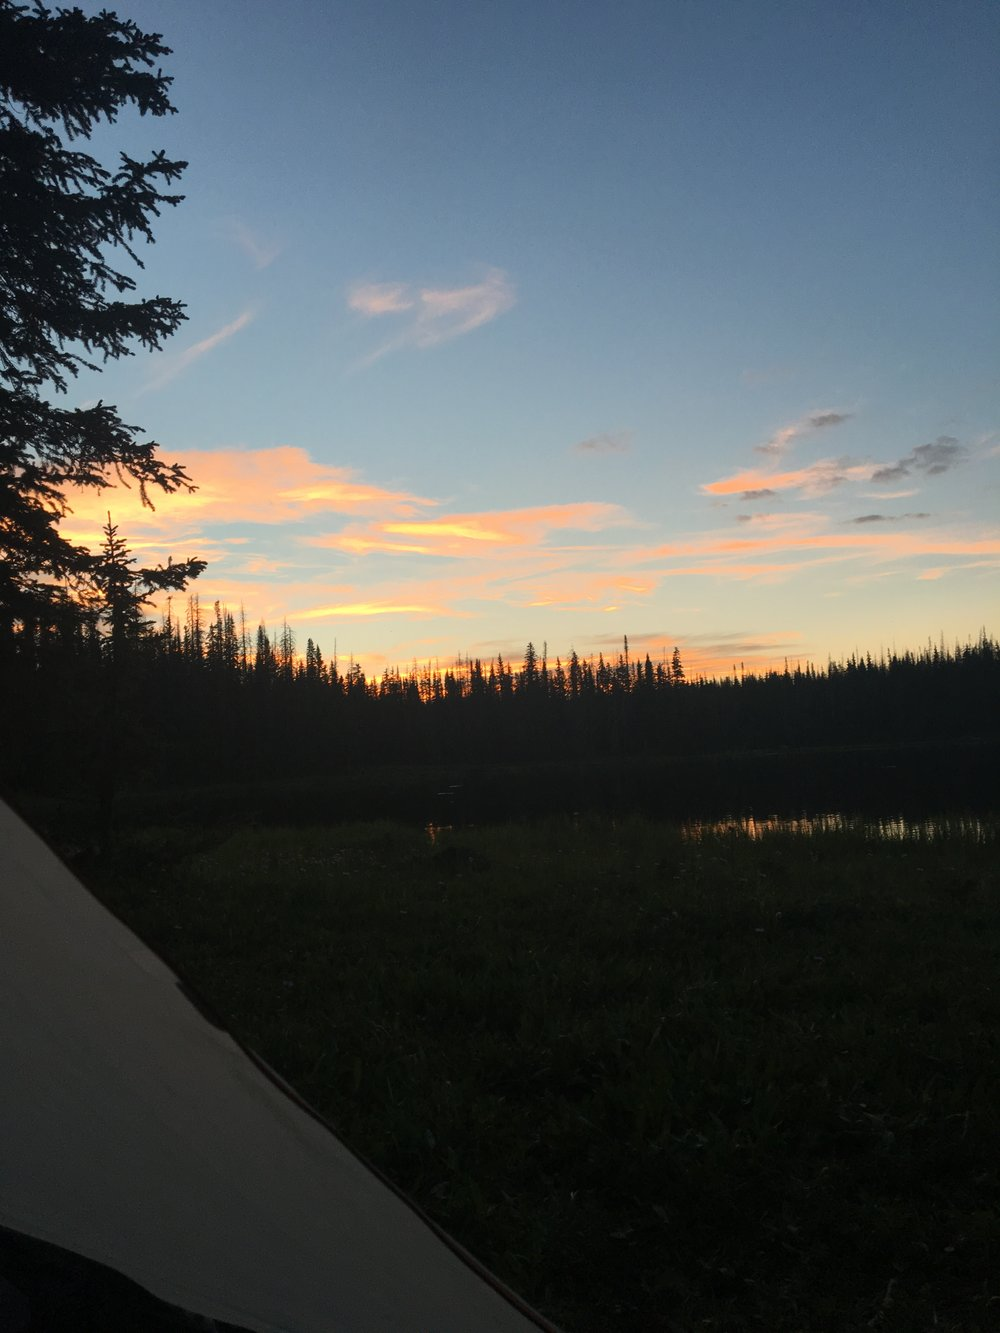 Sunset views from our tent